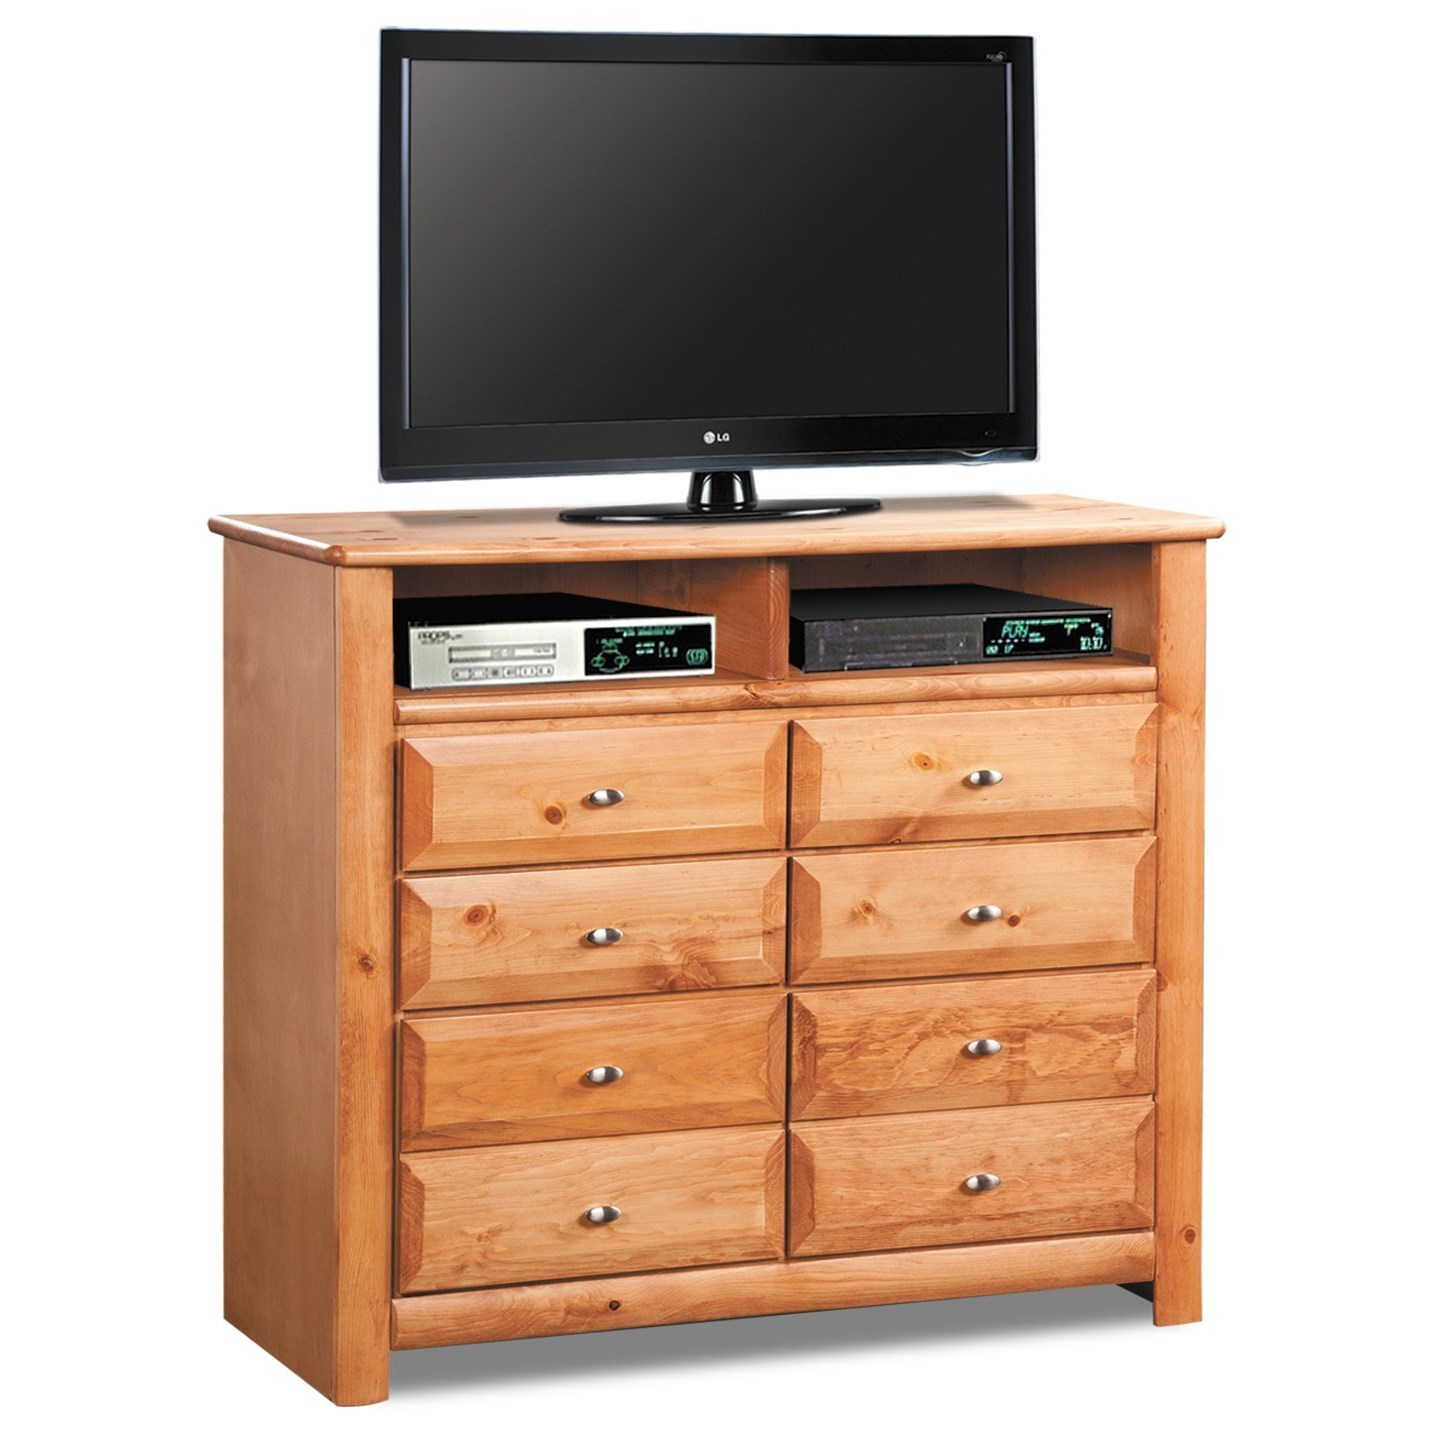 Trendwood Laguna 4539ca Media Chest With 2 Open Compartments And Eight Drawers Dunk Bright